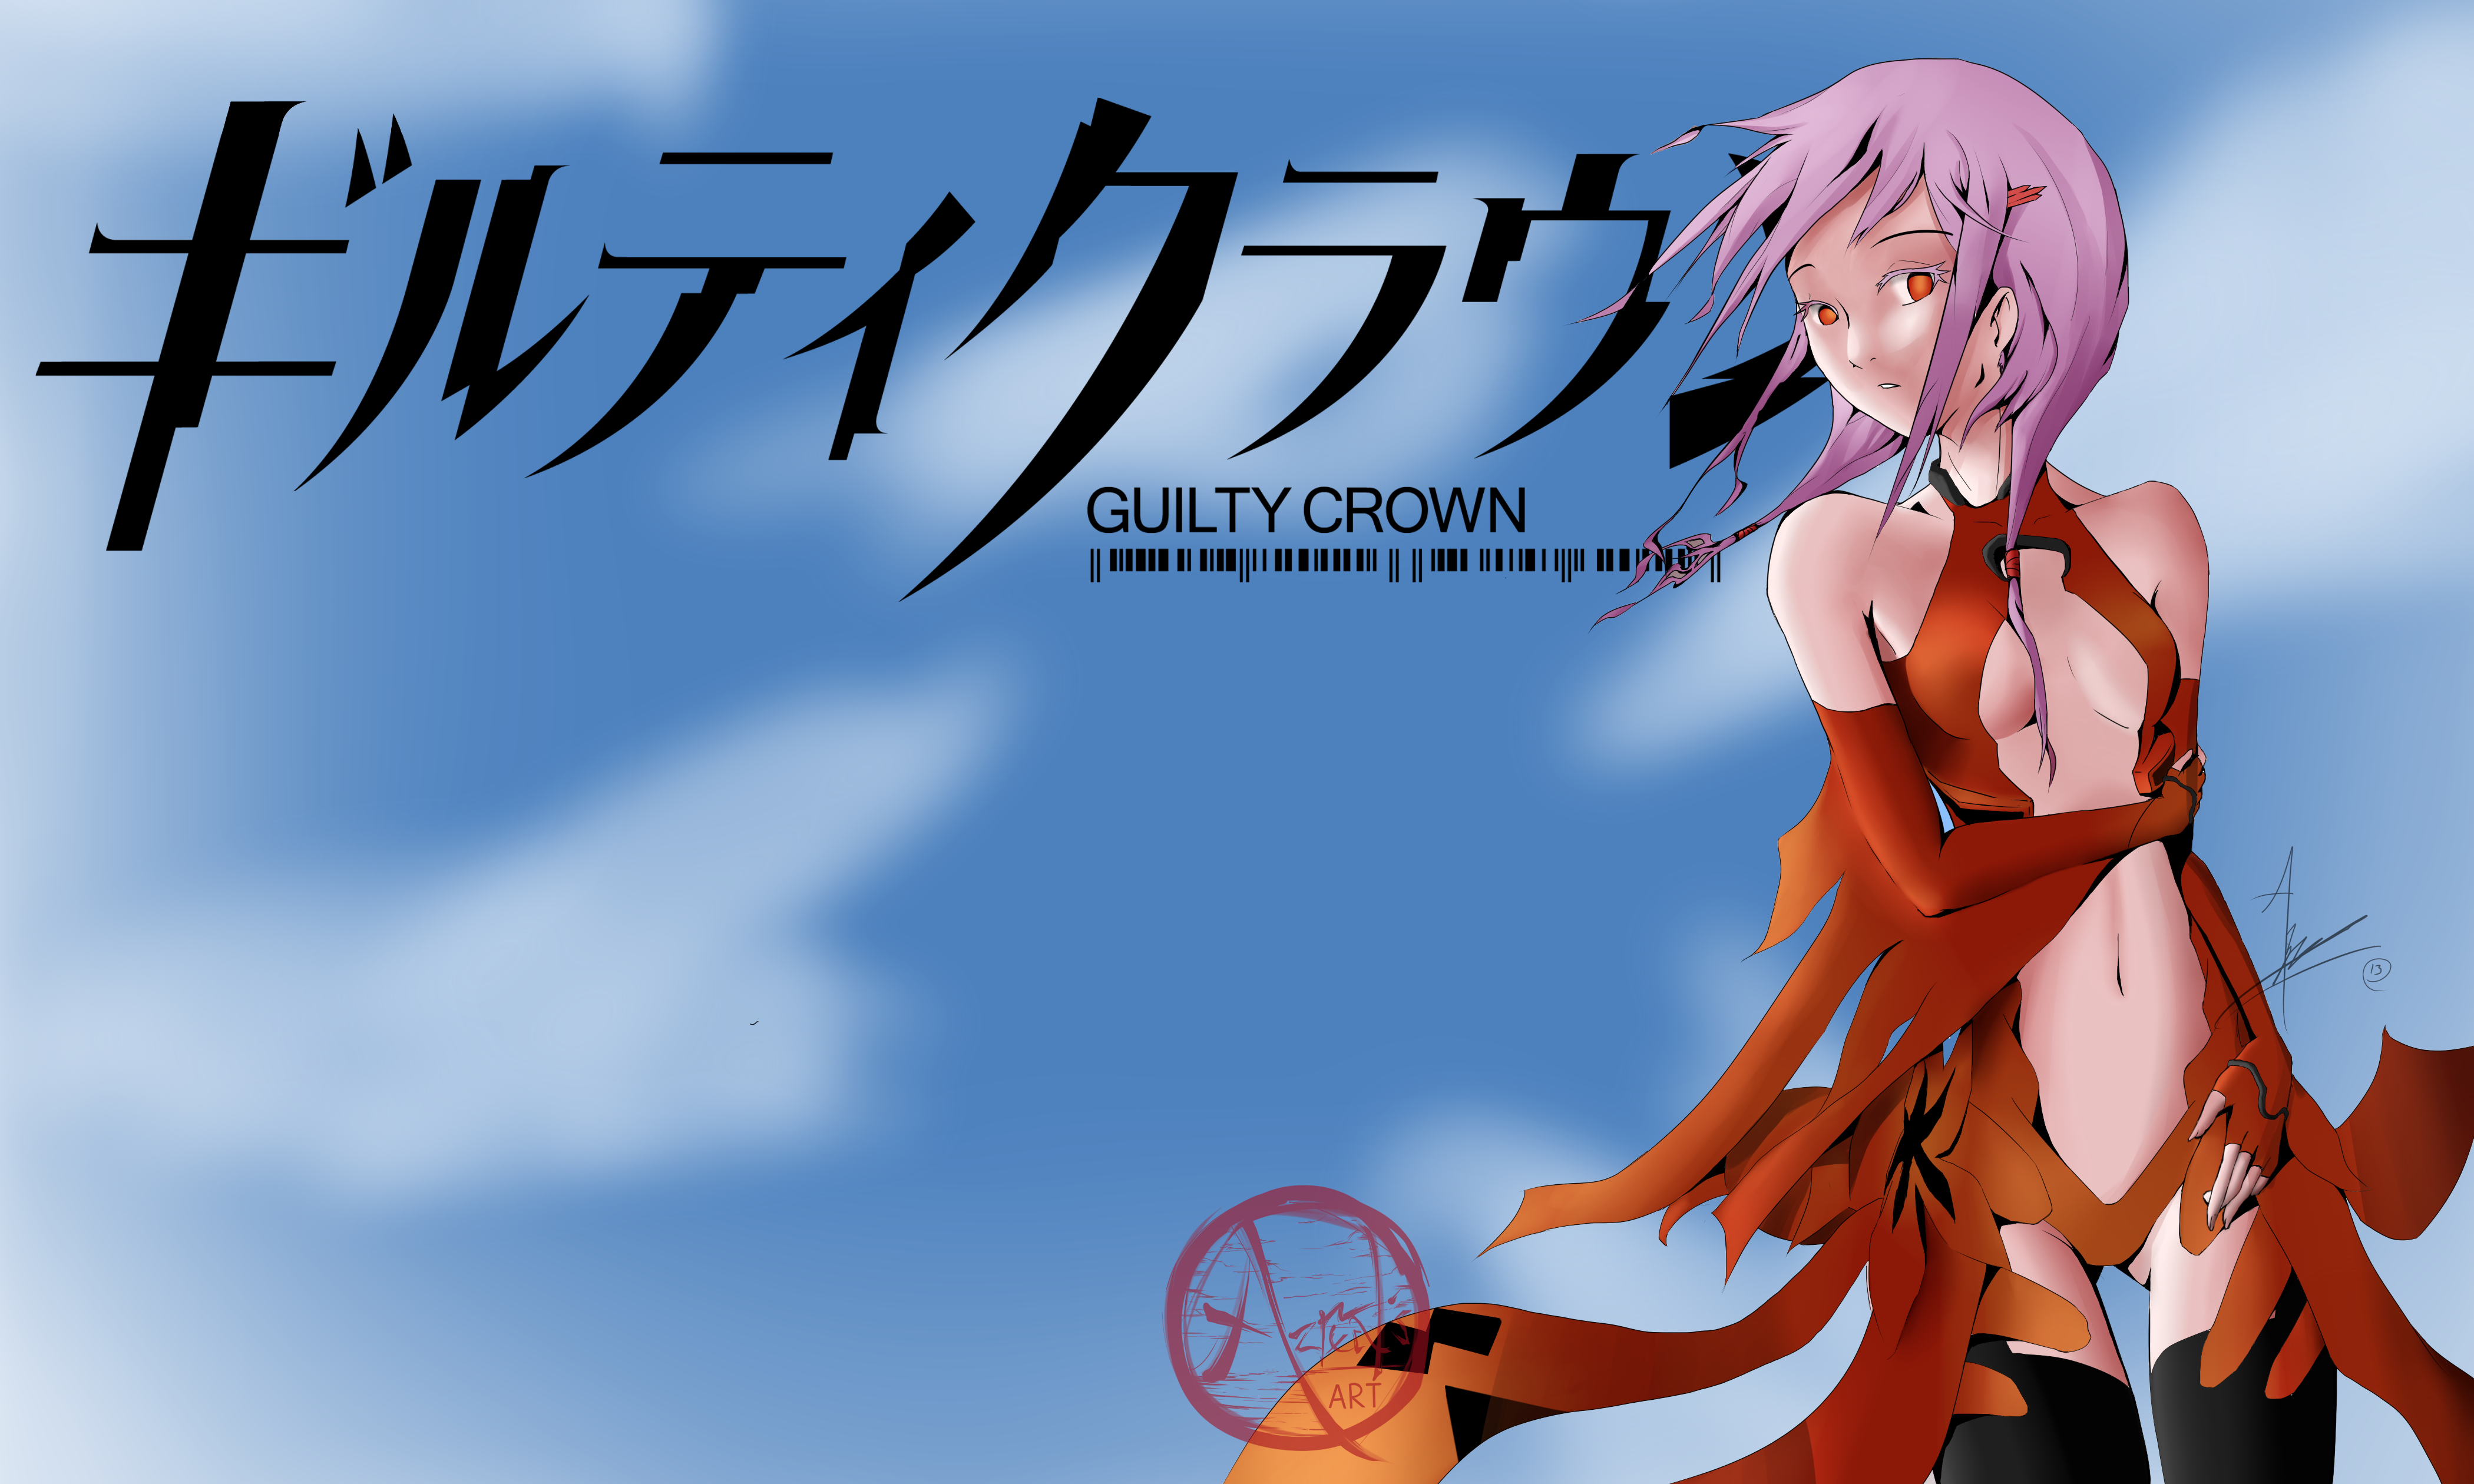 the sinful crown